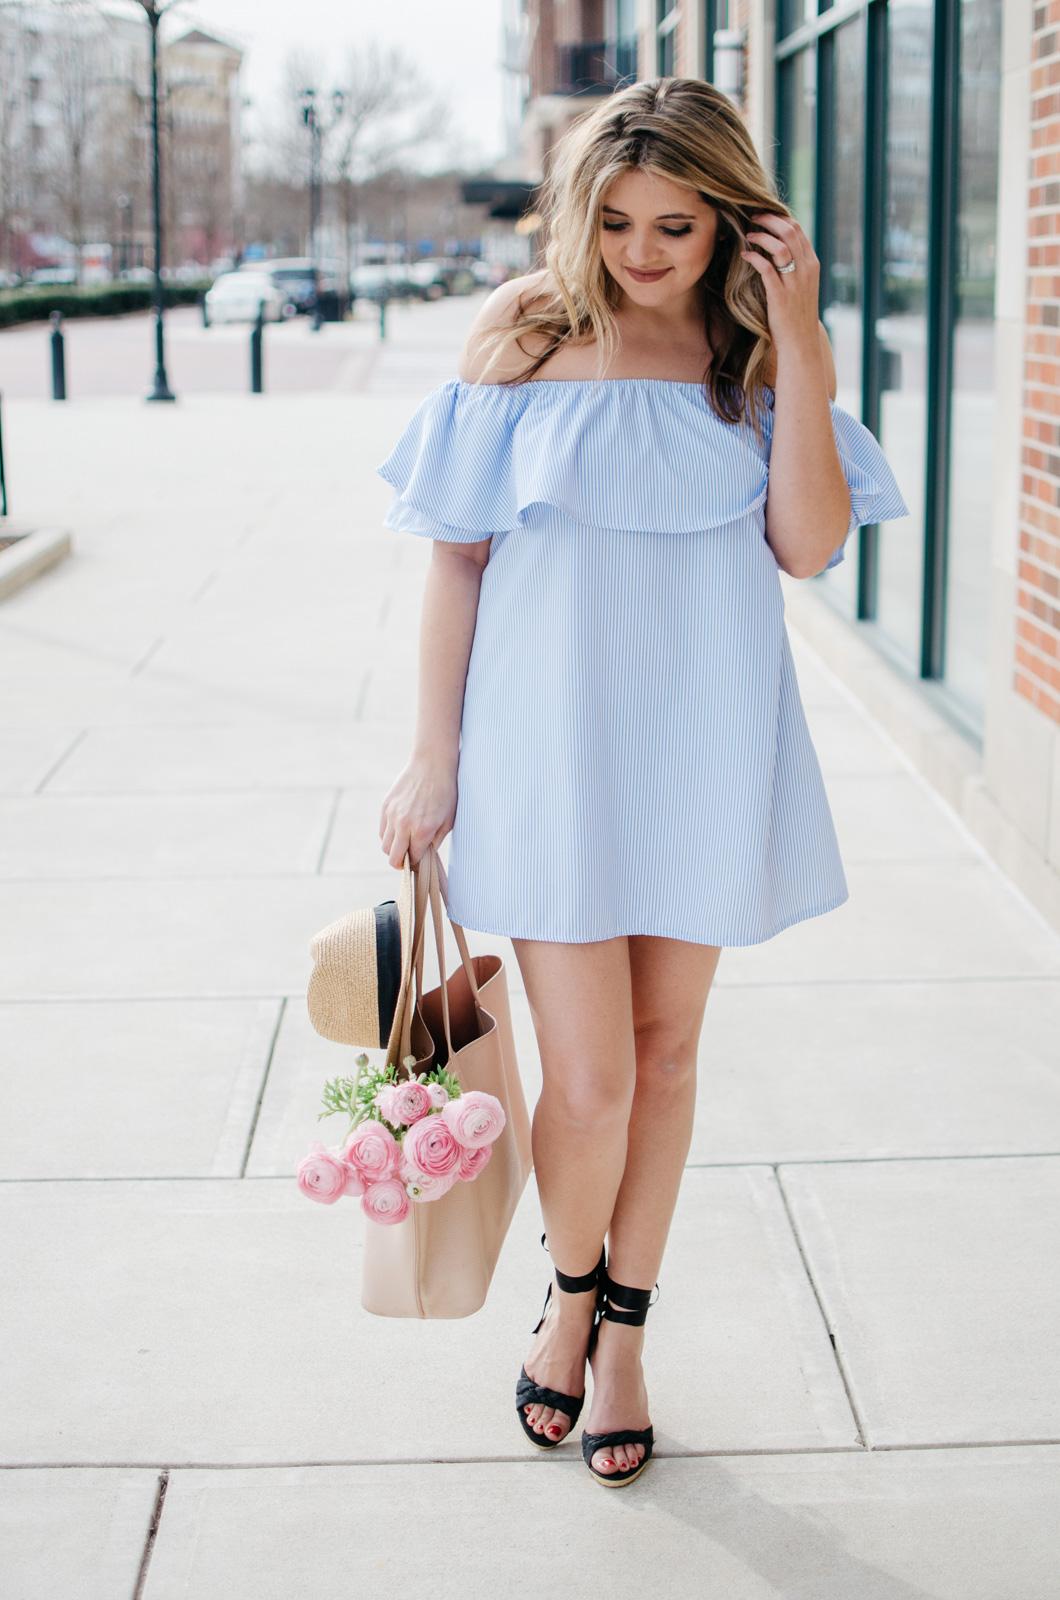 off shoulder dress outfit - girly spring outfit idea | Click through for more cute spring outfits or to shop this look! bylaurenm.com